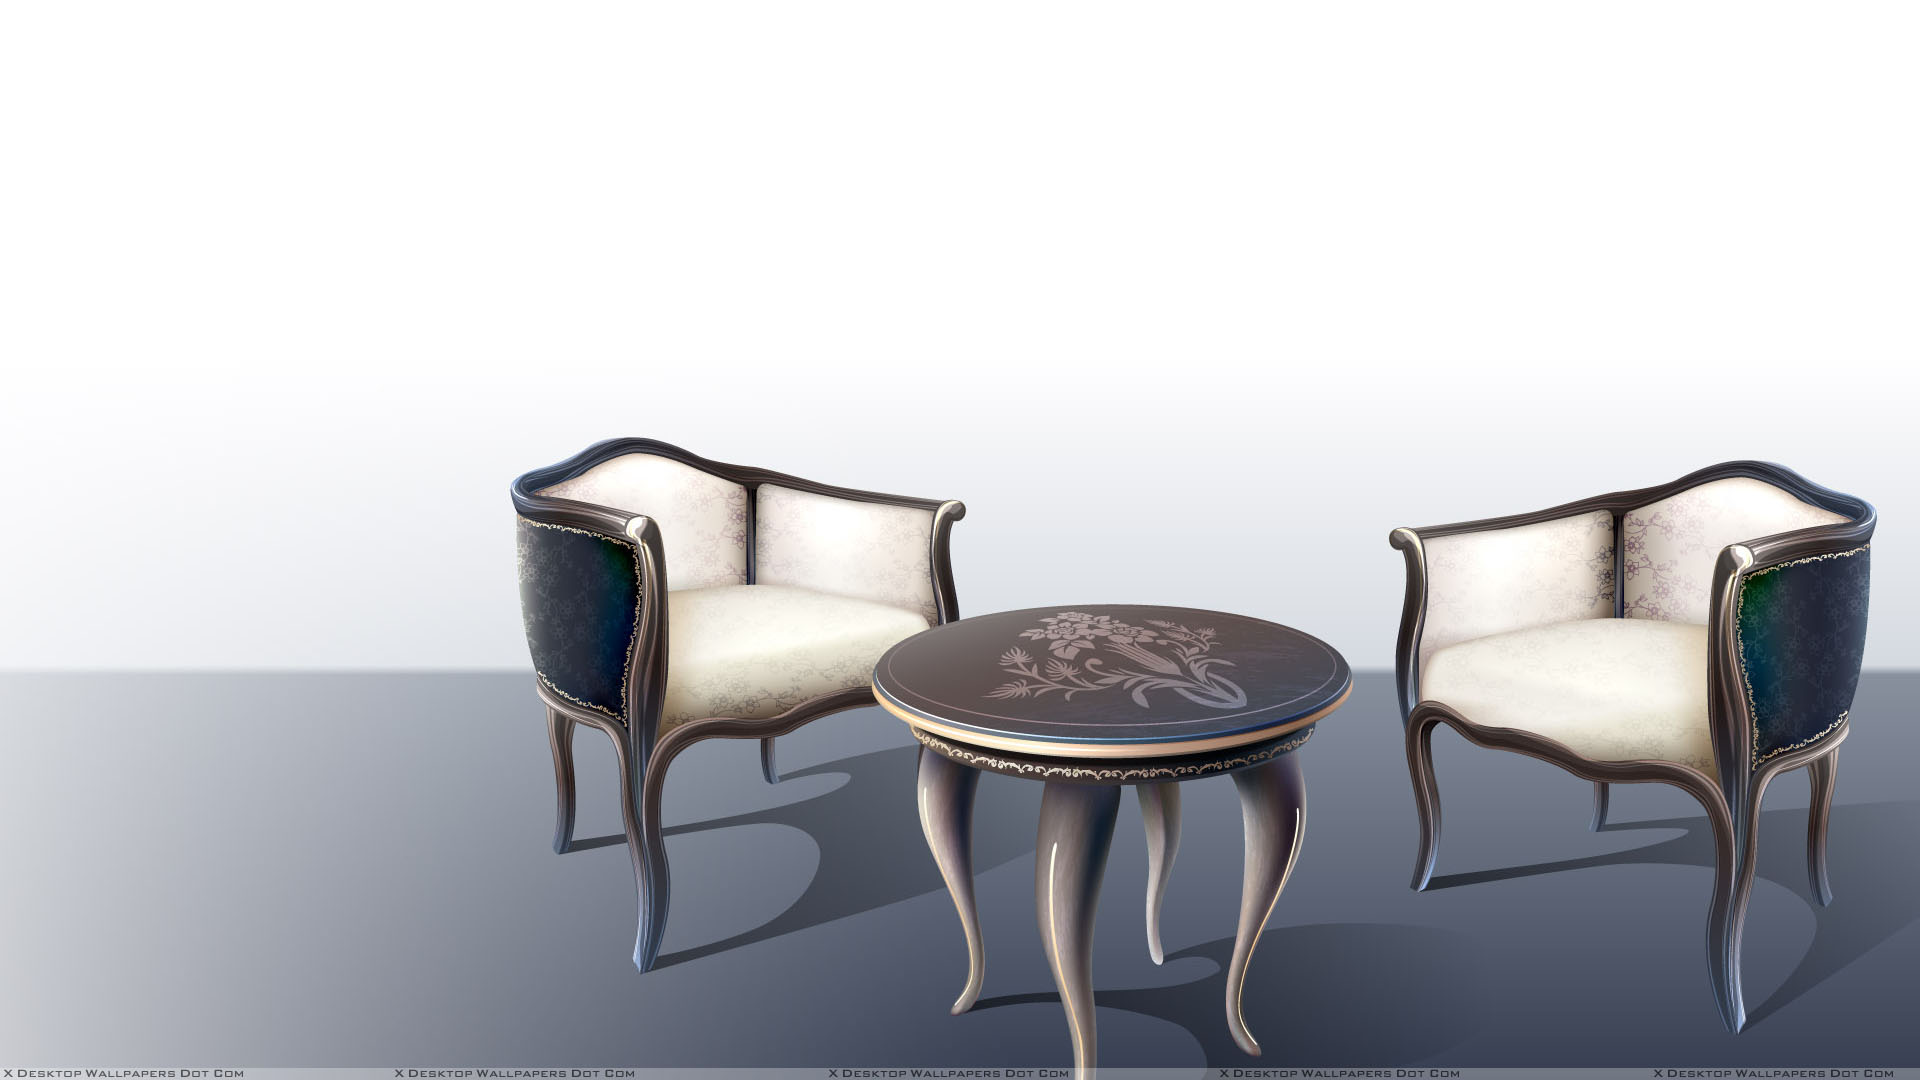 Table With Two Chairs Two Chairs And Table With White Background Wallpaper